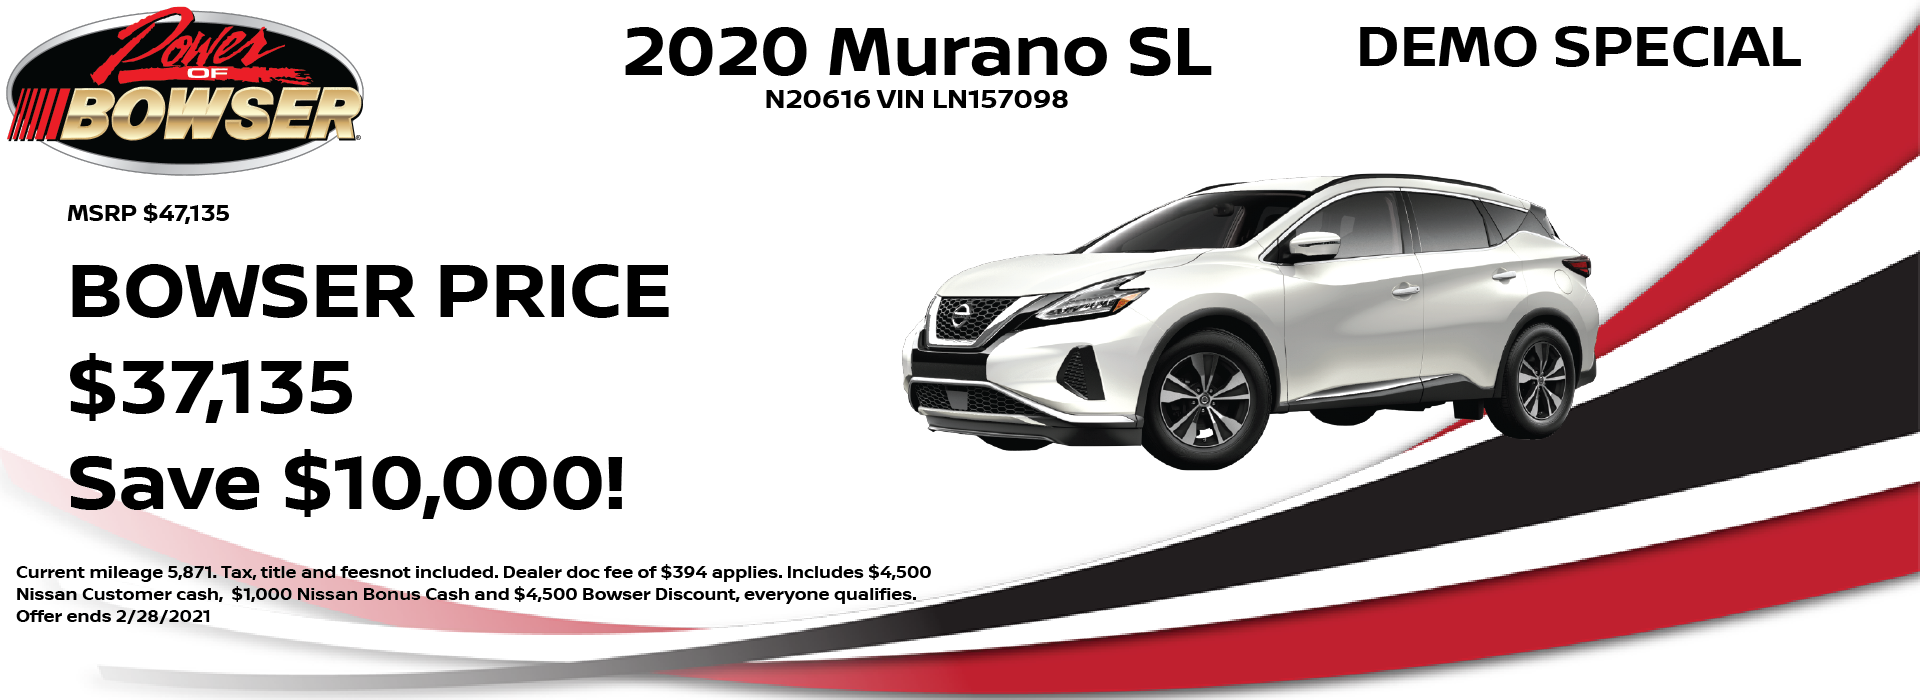 2020 Murano Special Offer